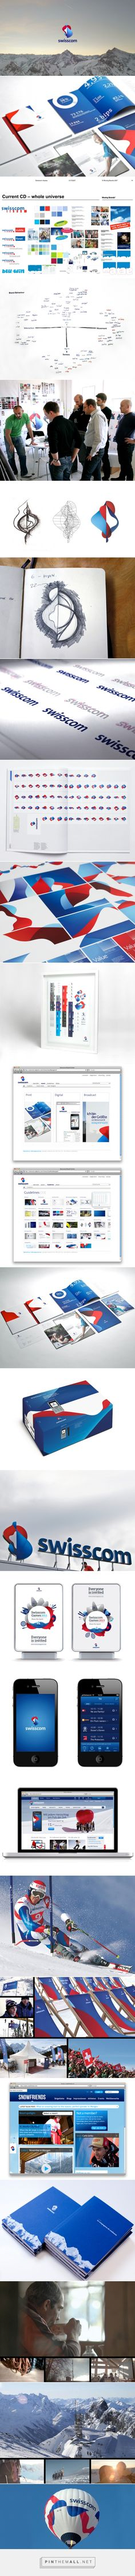 Work Swisscom... - a grouped images picture - Pin Them All